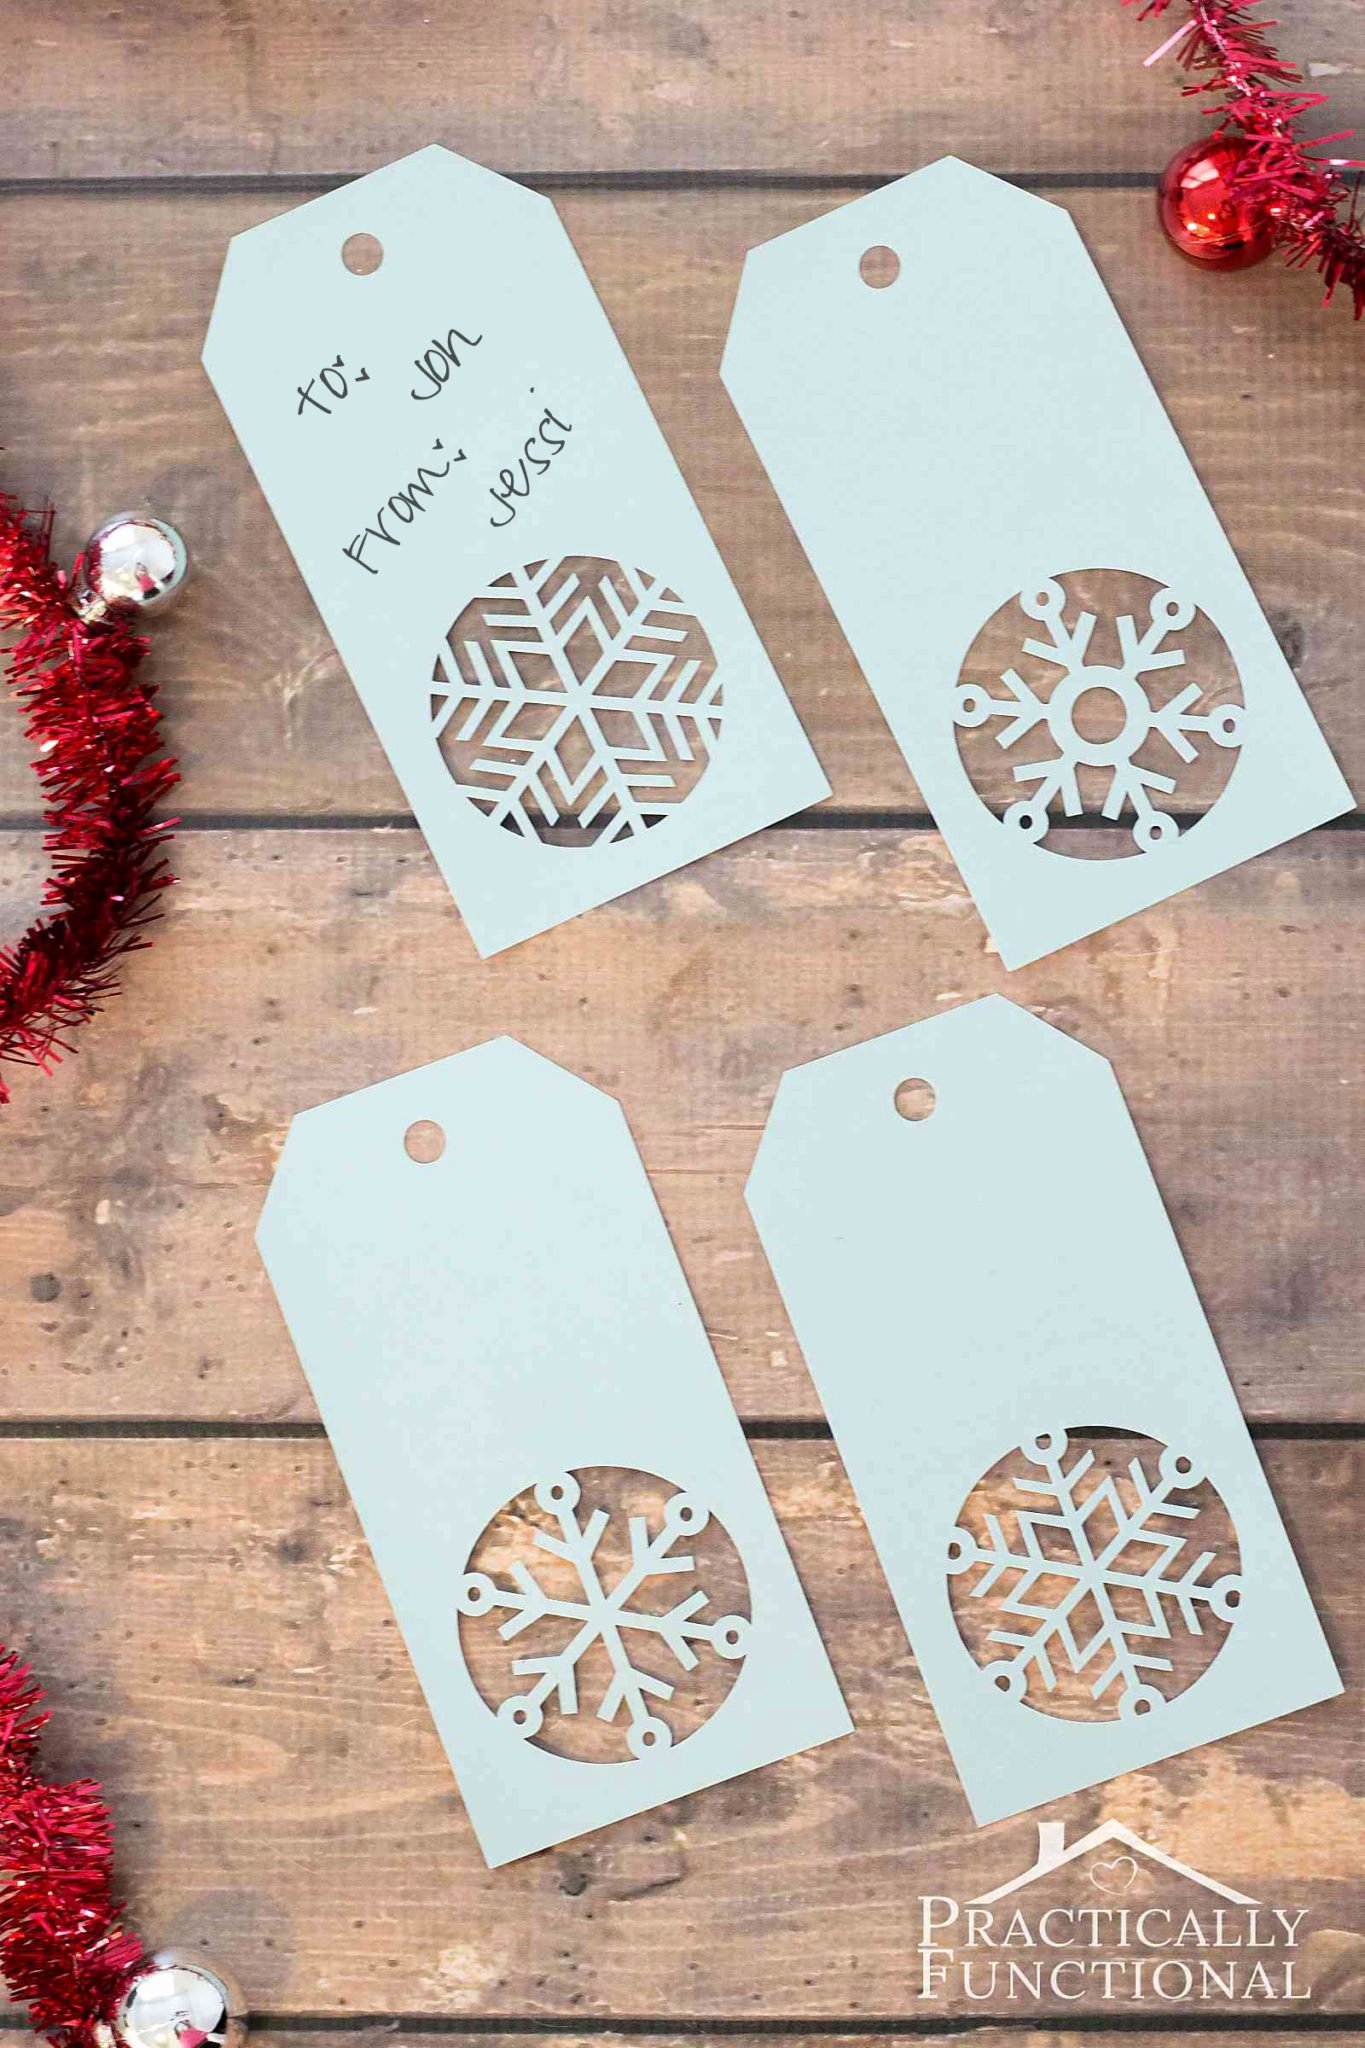 Template for Gift Tags Elegant Handmade Snowflake Christmas Gift Tags Free Template